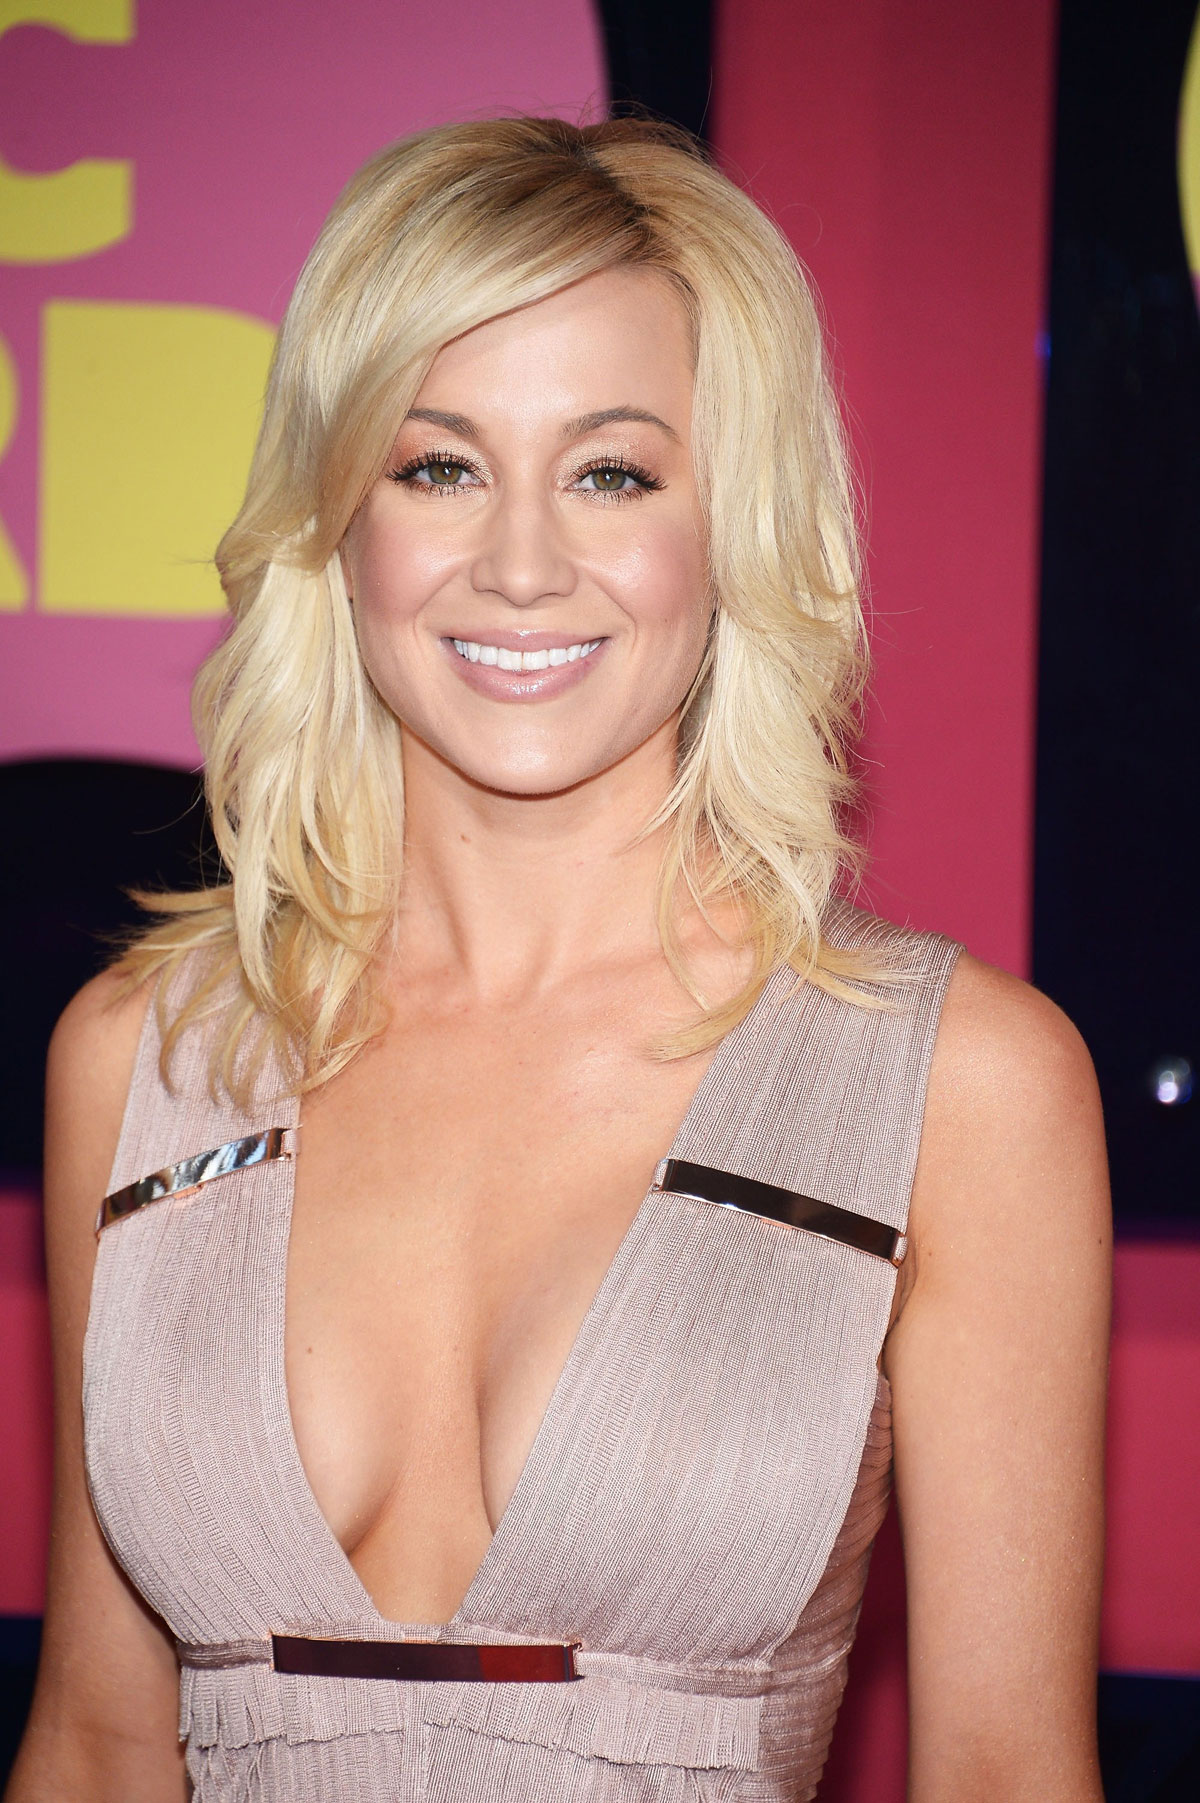 kellie pickler net worth